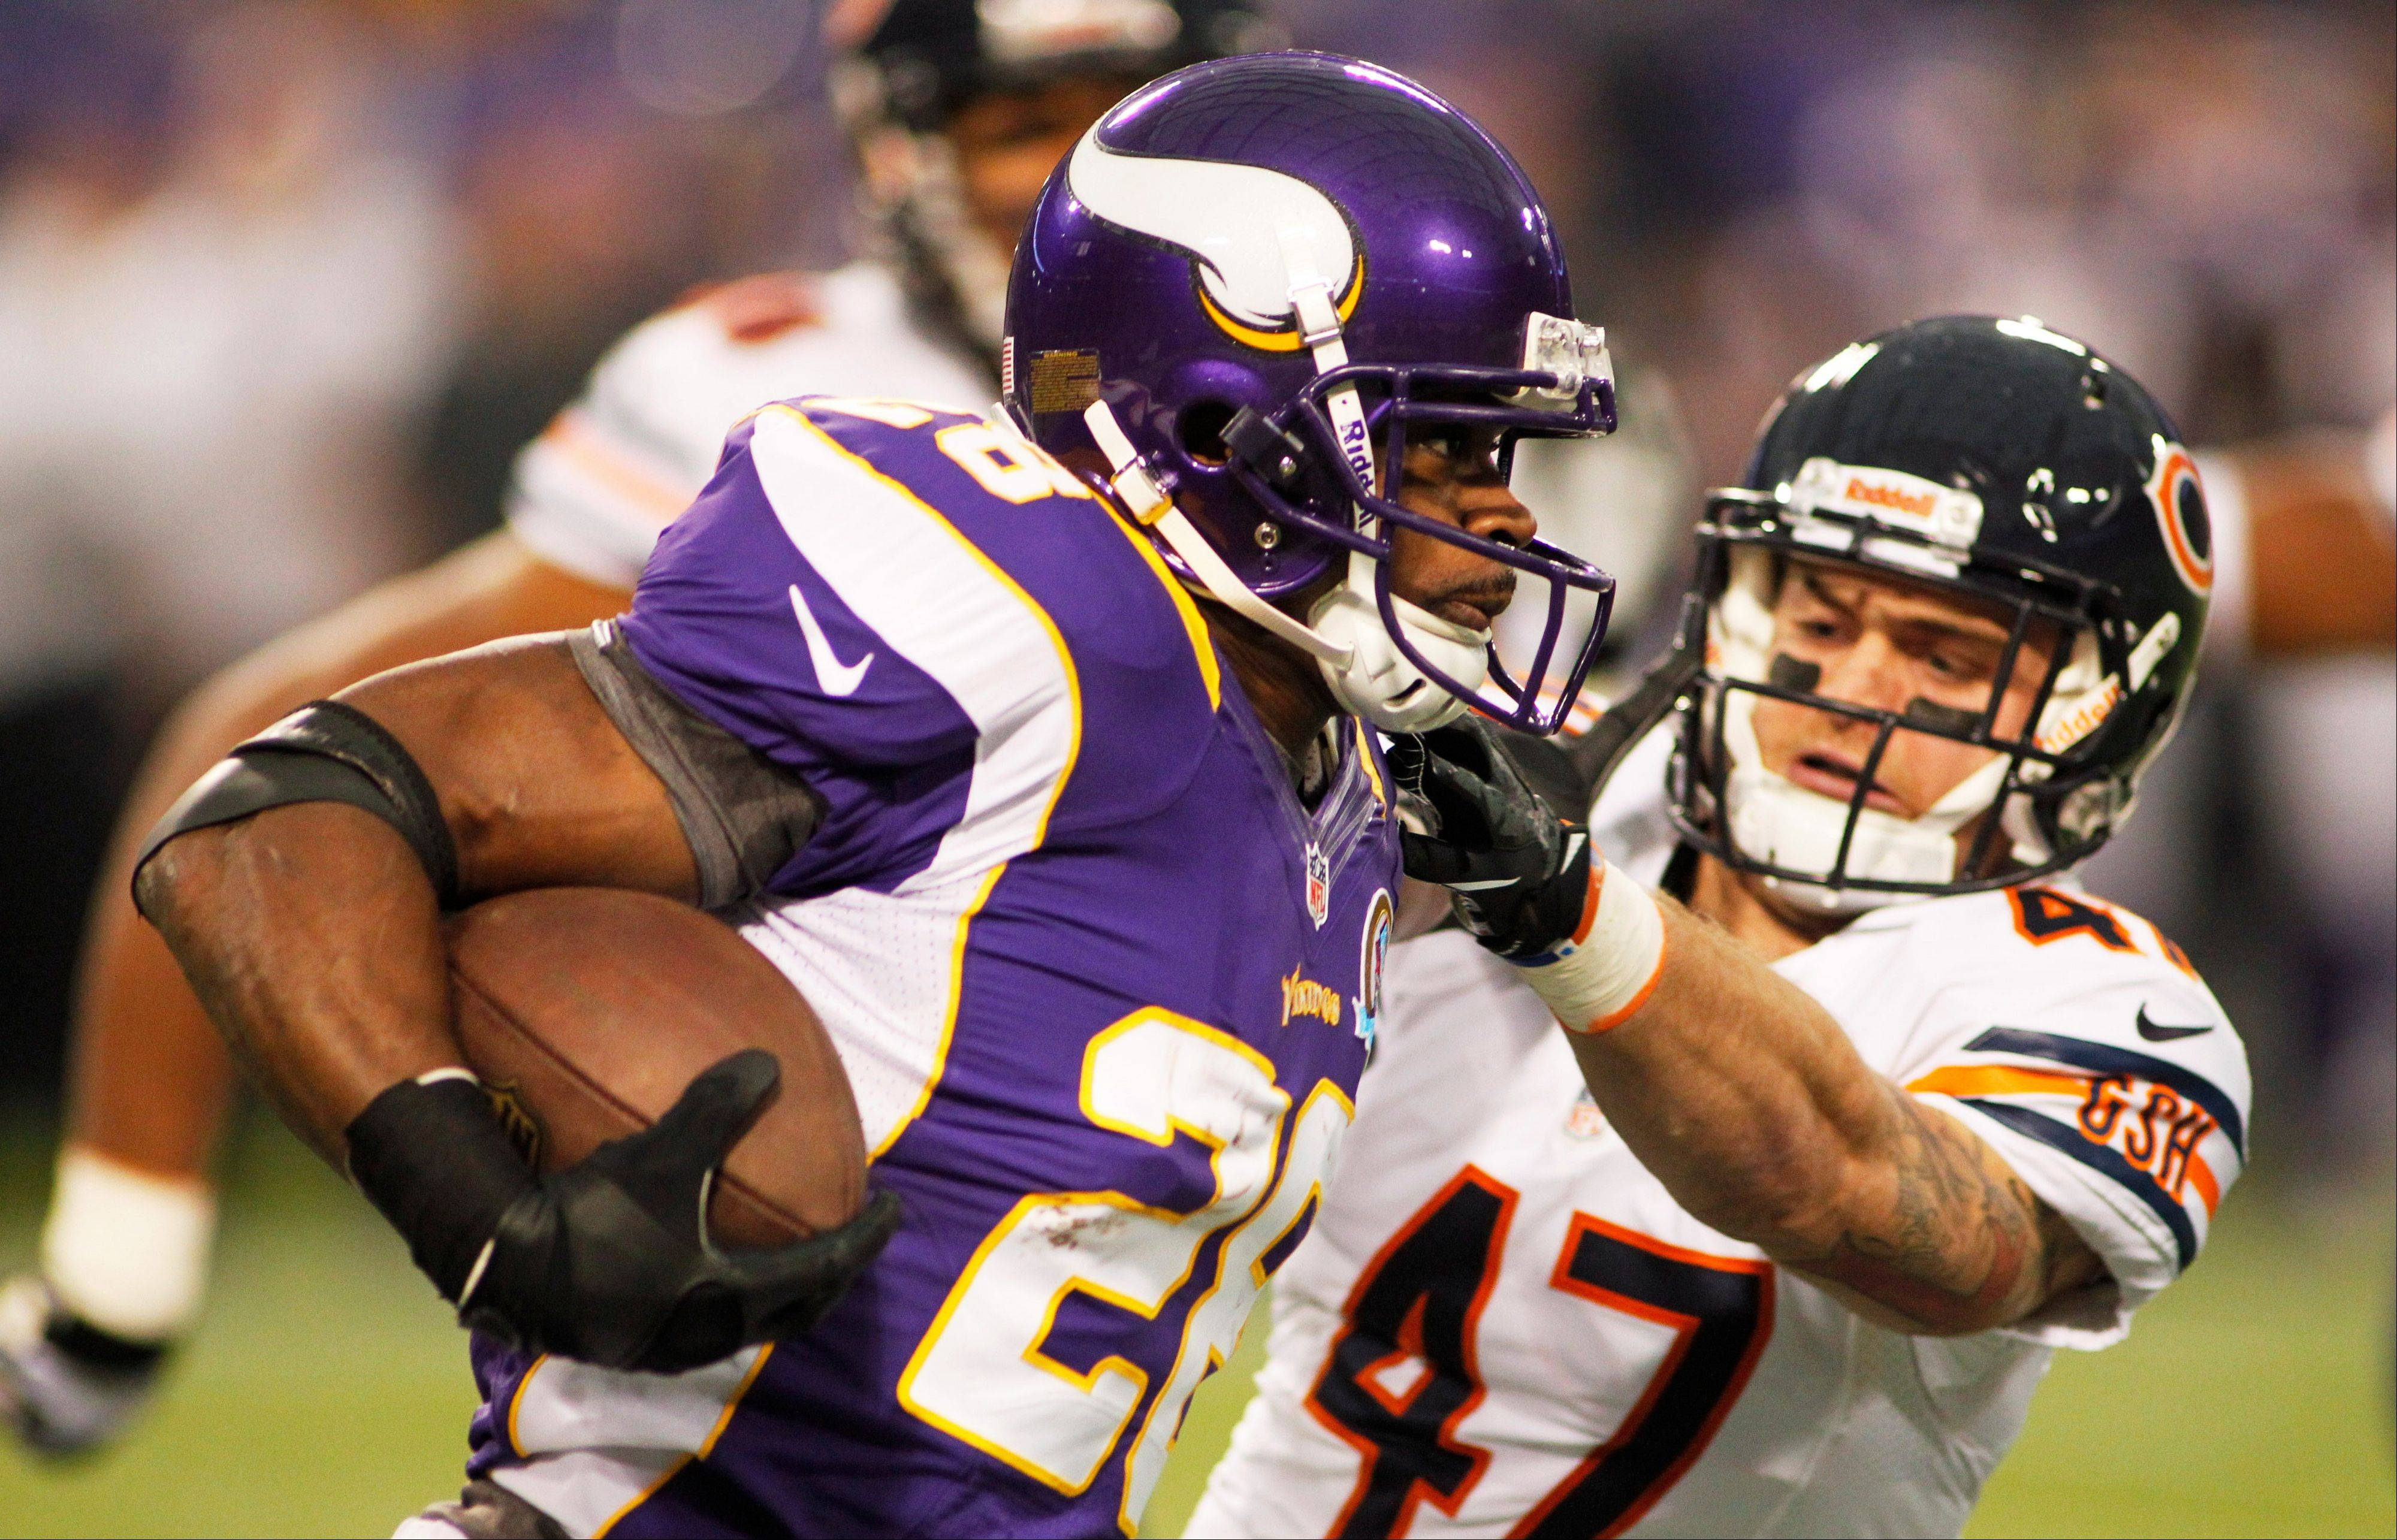 Minnesota Vikings running back Adrian Peterson, left, tries to break a tackle by Chicago Bears safety Chris Conte during the first half of an NFL football game Sunday, Dec. 9, 2012, in Minneapolis.